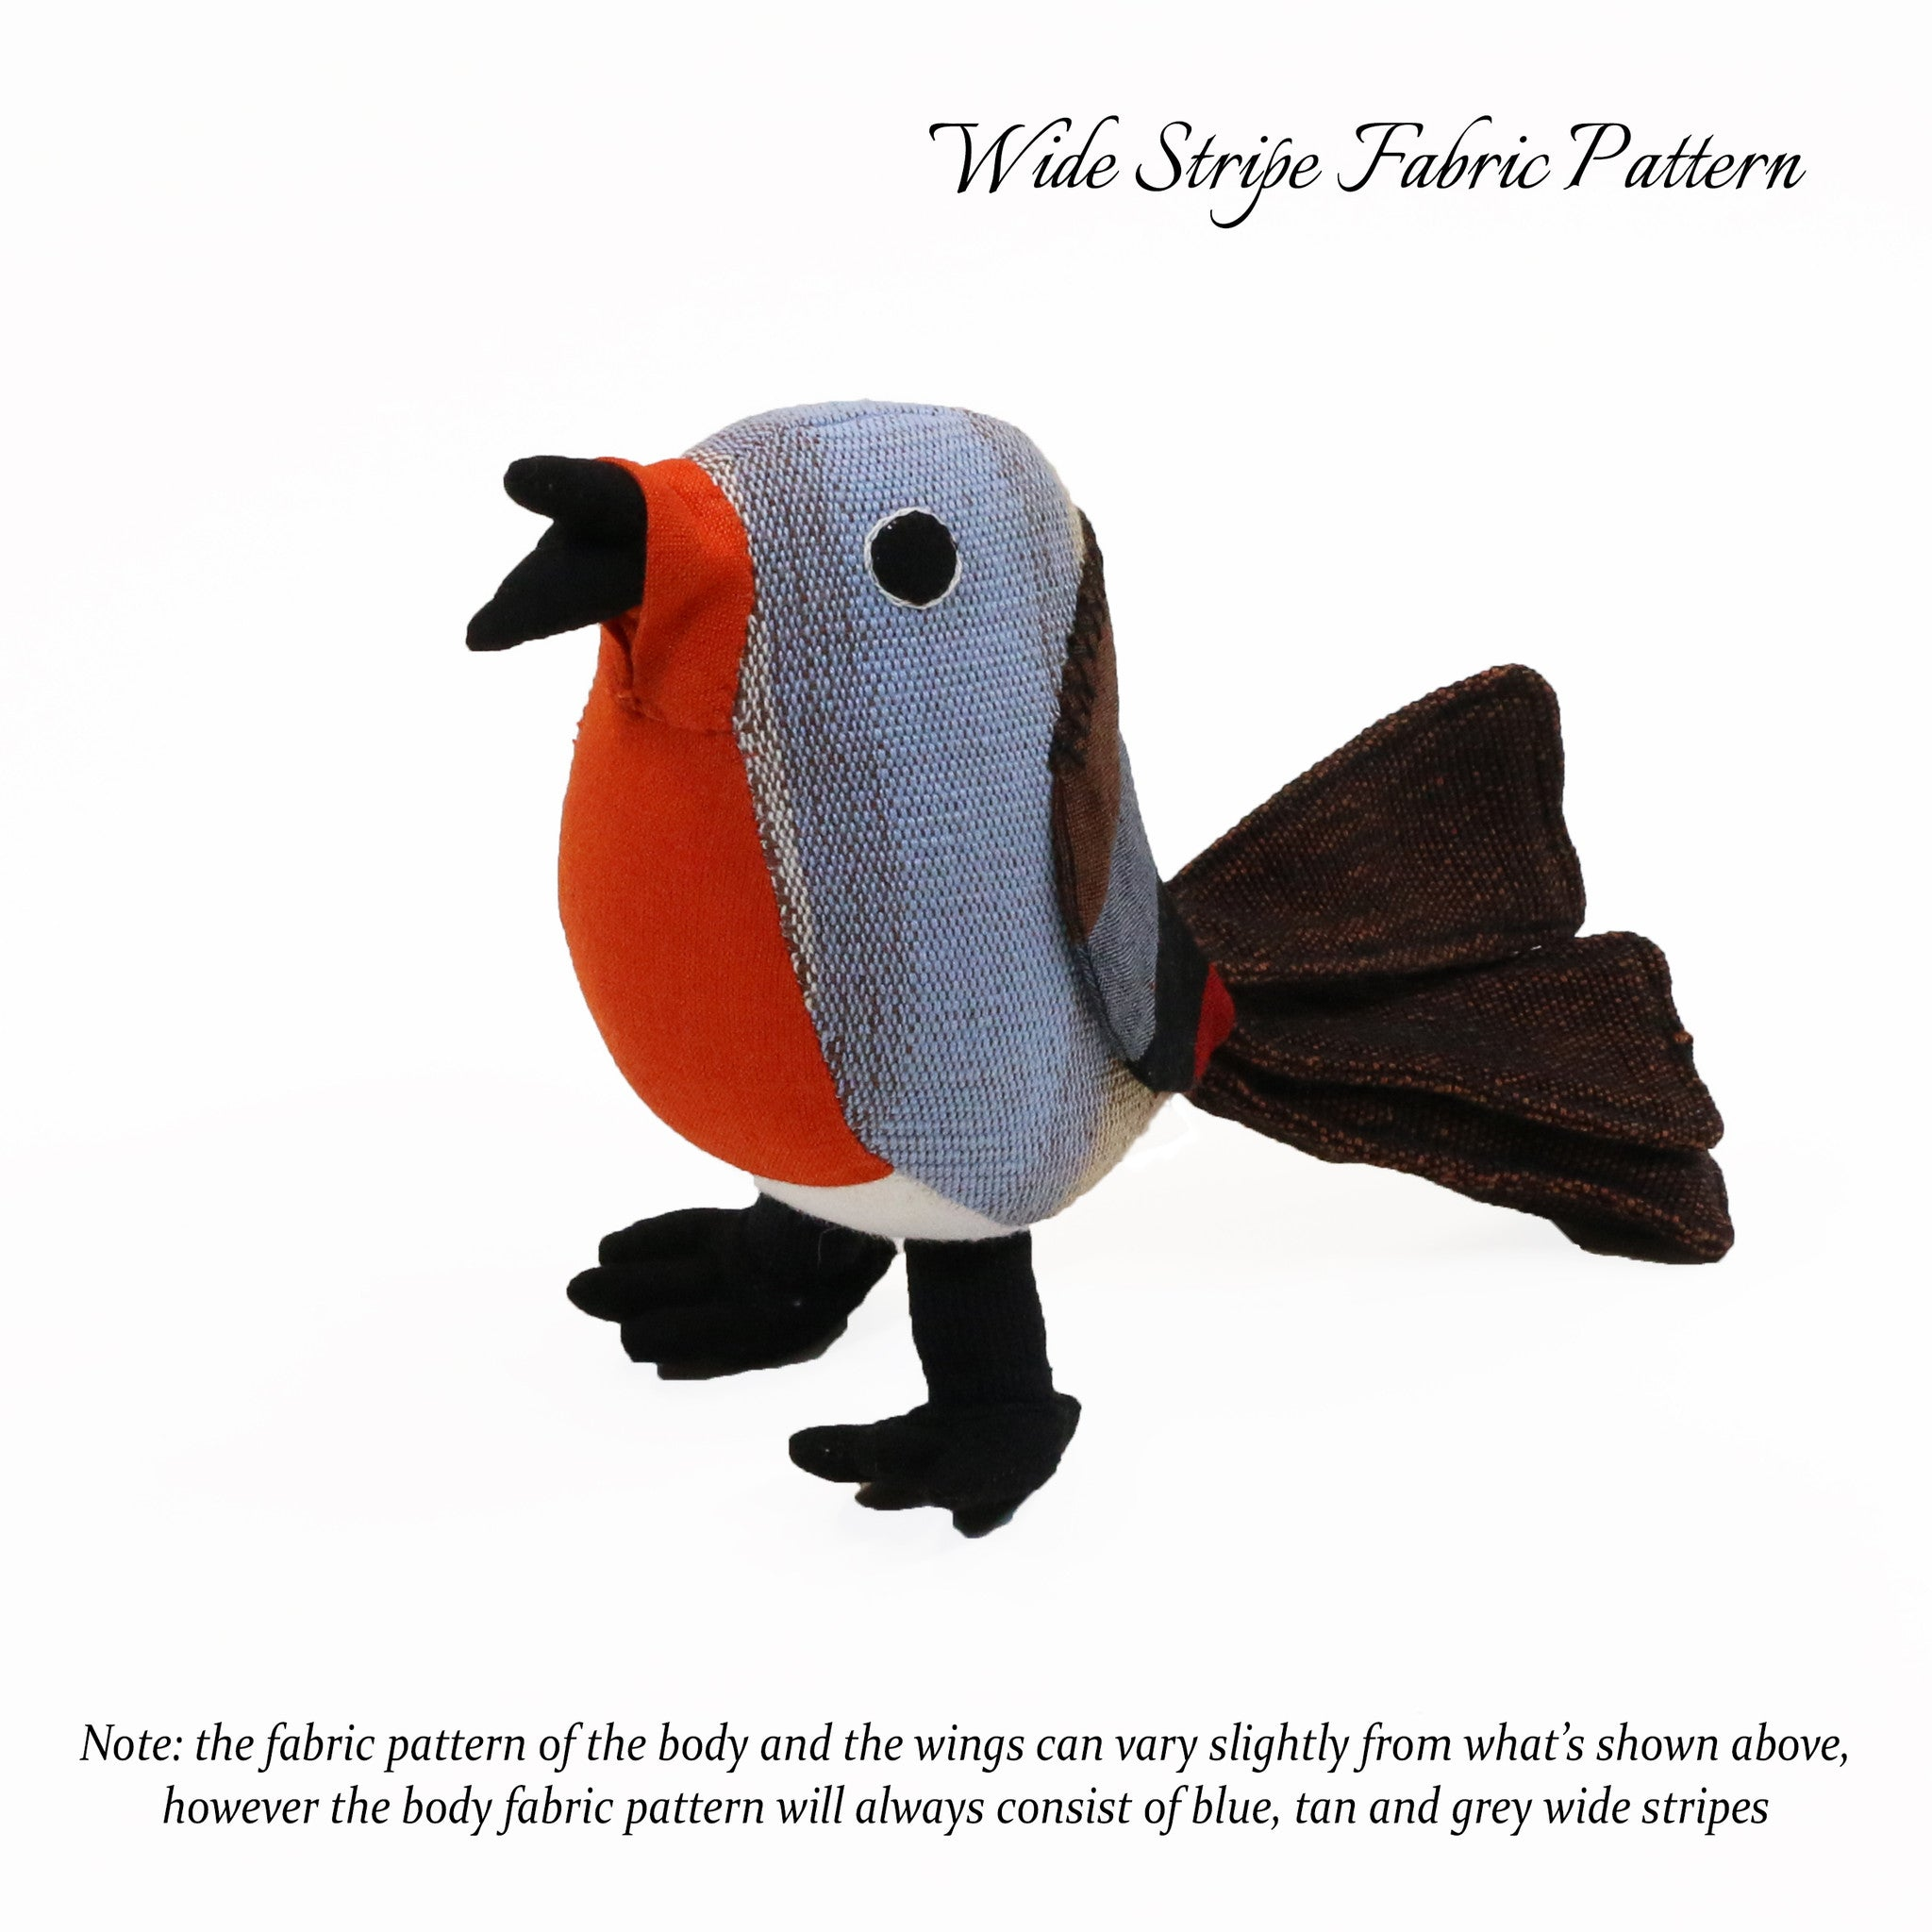 Ricky, the Red Robin (wide stripe fabric pattern, front view)